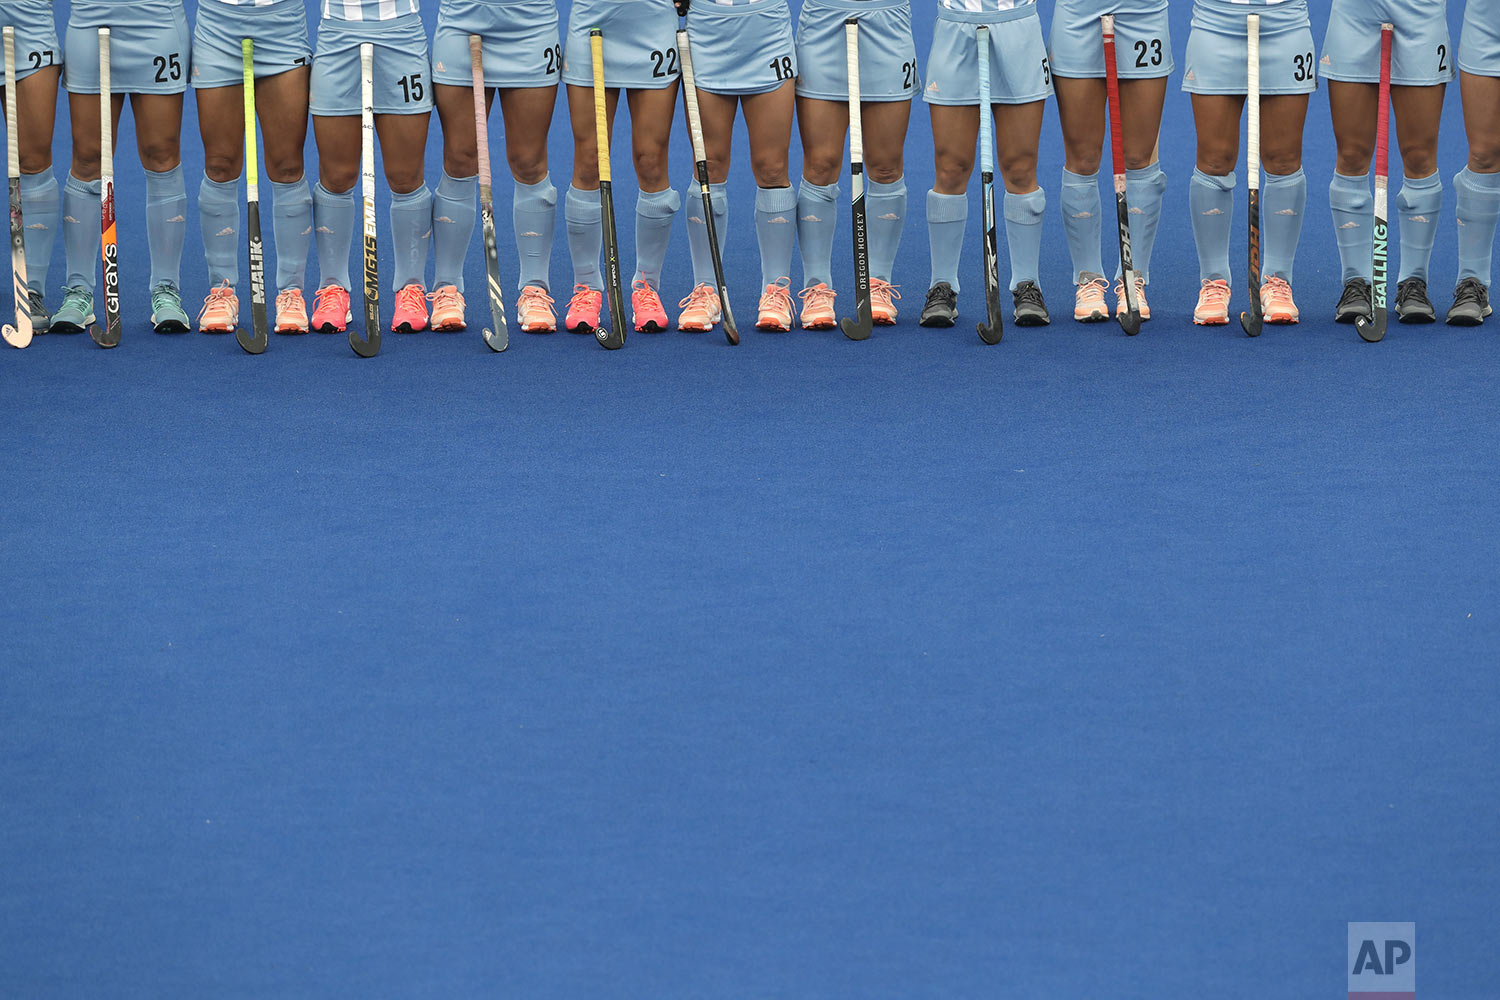 Argentina's hockey players stand in line during the playing of national anthems before their women's preliminaries pool WA against Canada at the Pan American Games in Lima, Peru, Wednesday, July 31, 2019. Argentina won 3-0. (AP Photo/Silvia Izquierdo)